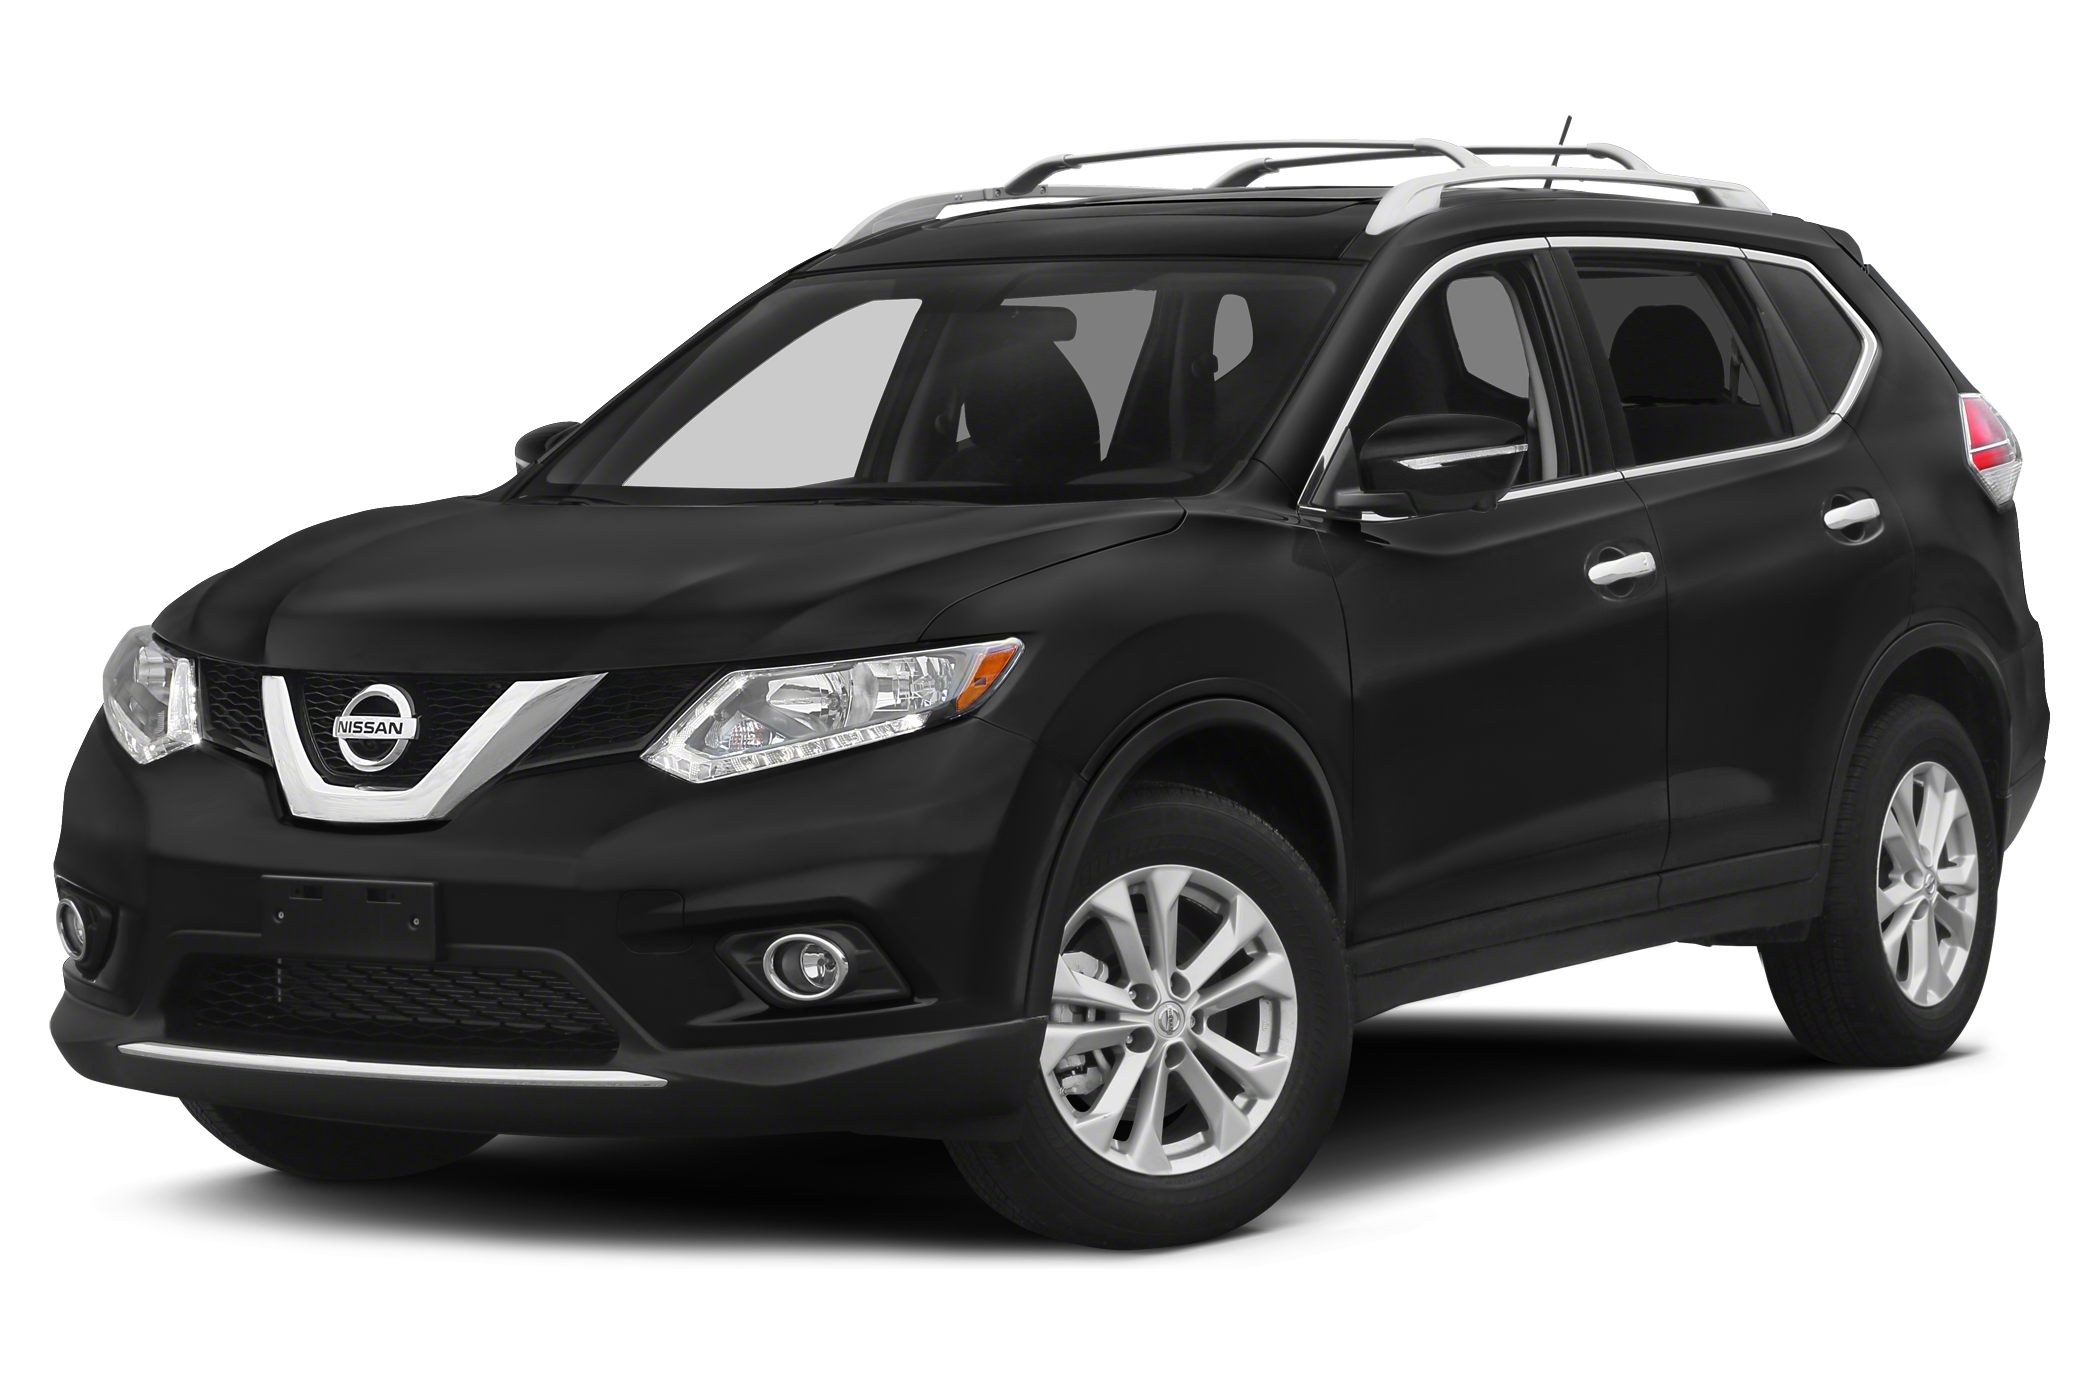 2015 Nissan Rogue SL SUV for sale in Lawrence for $30,805 with 3 miles